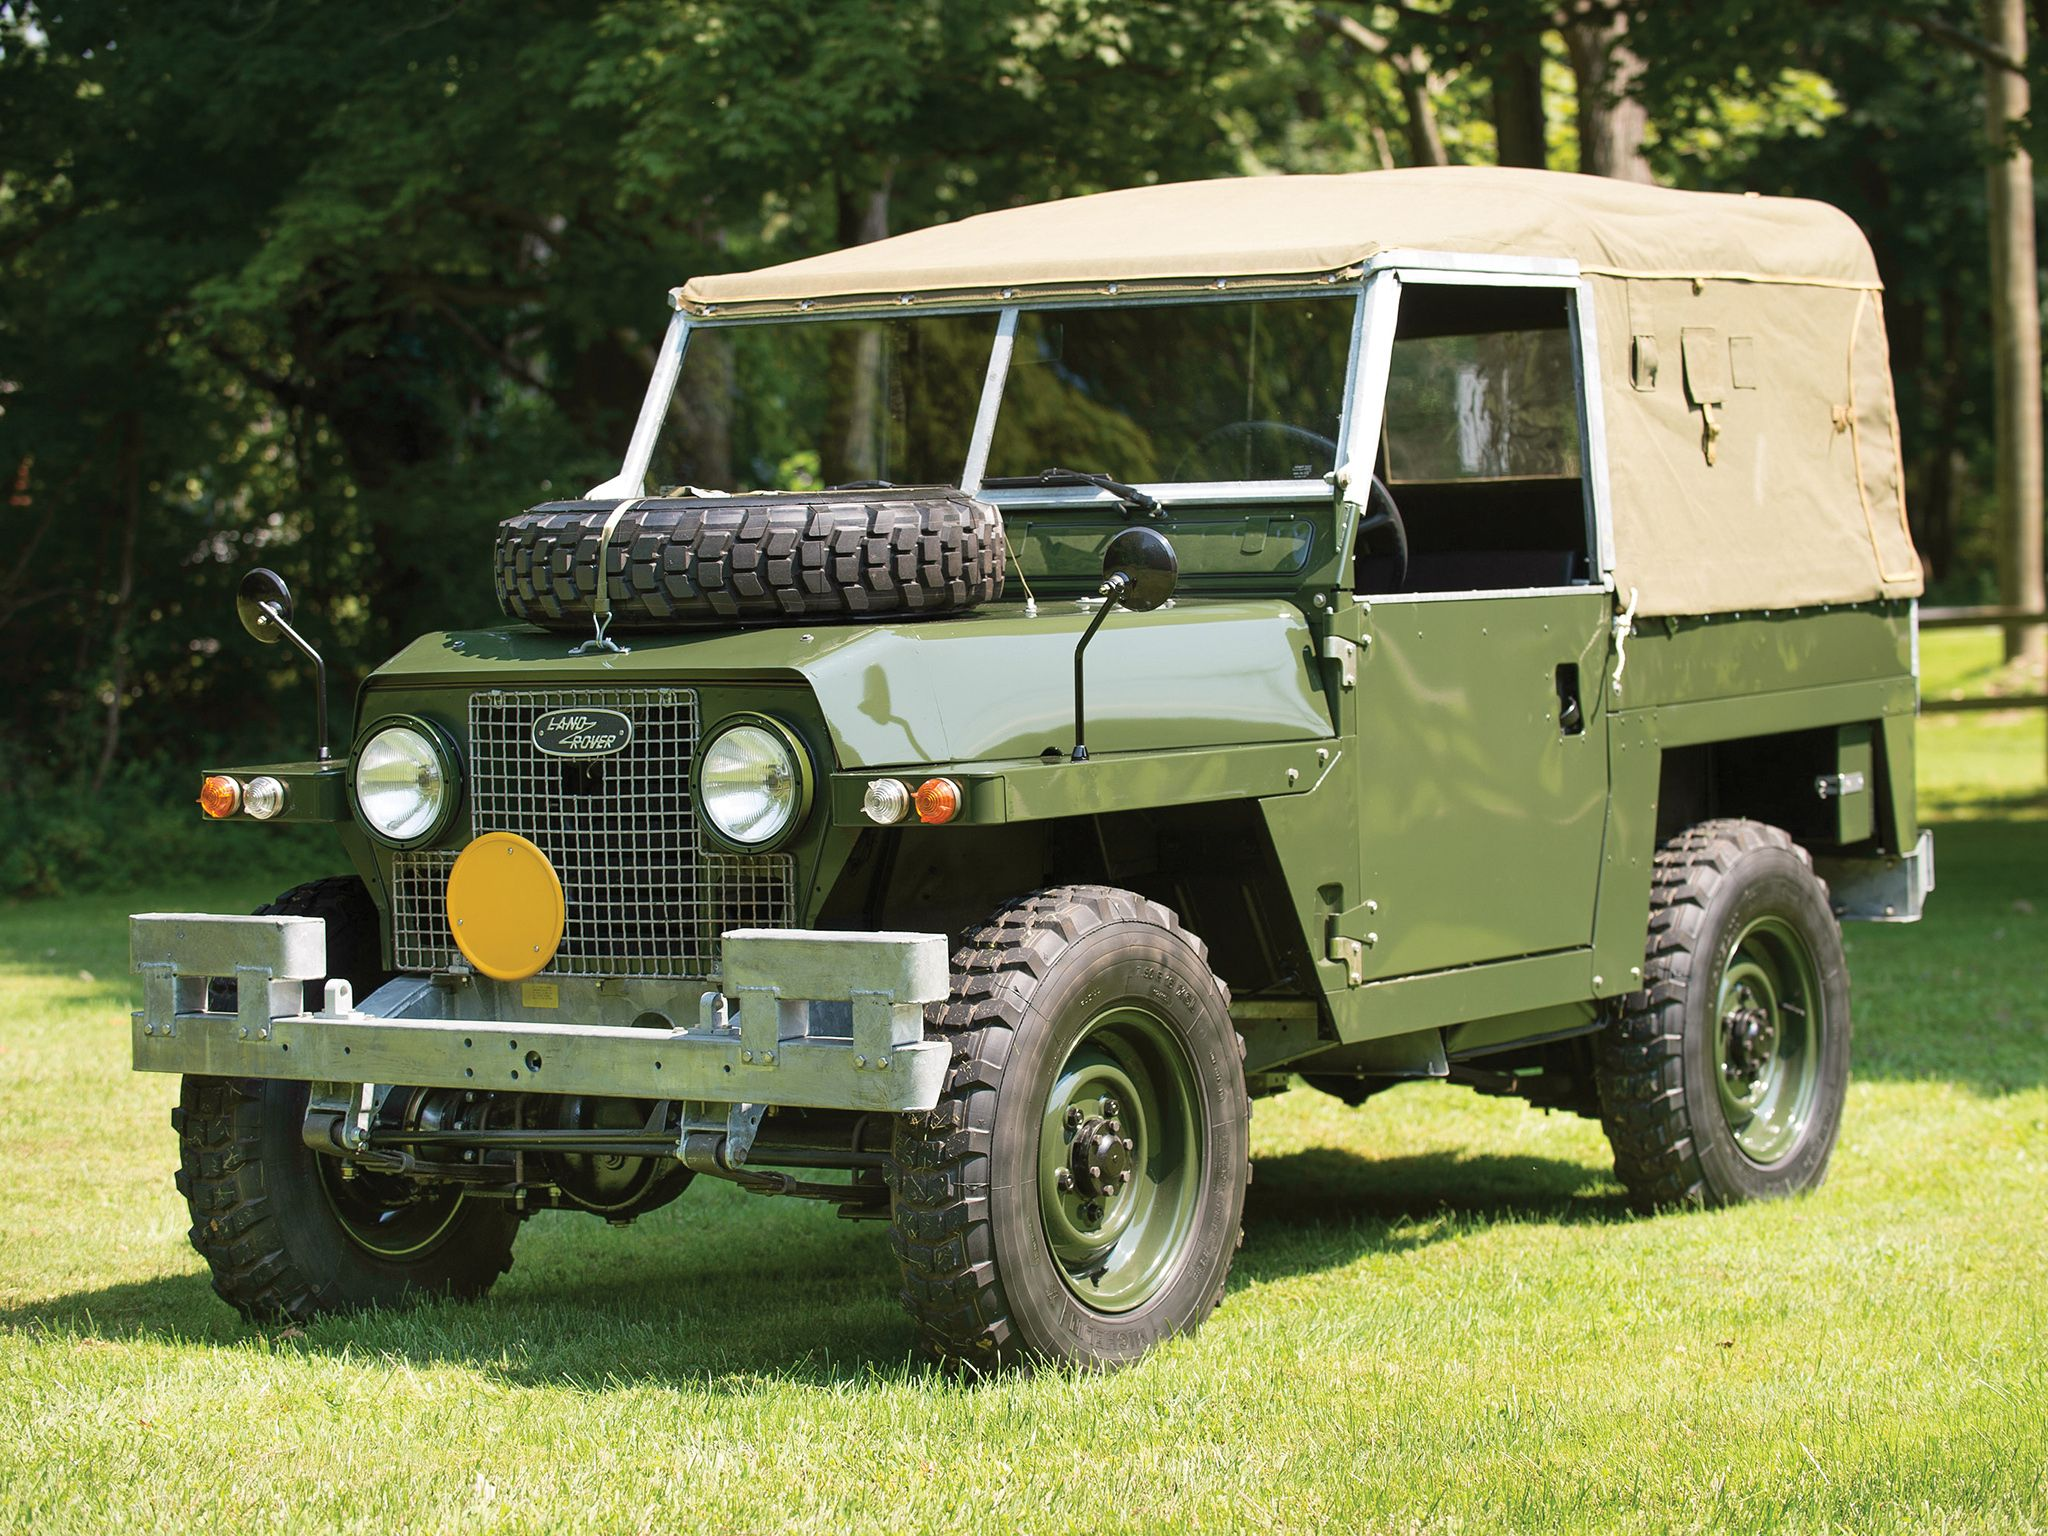 1968 Land Rover Lightweight IIA offroad 4x4 military f wallpaper